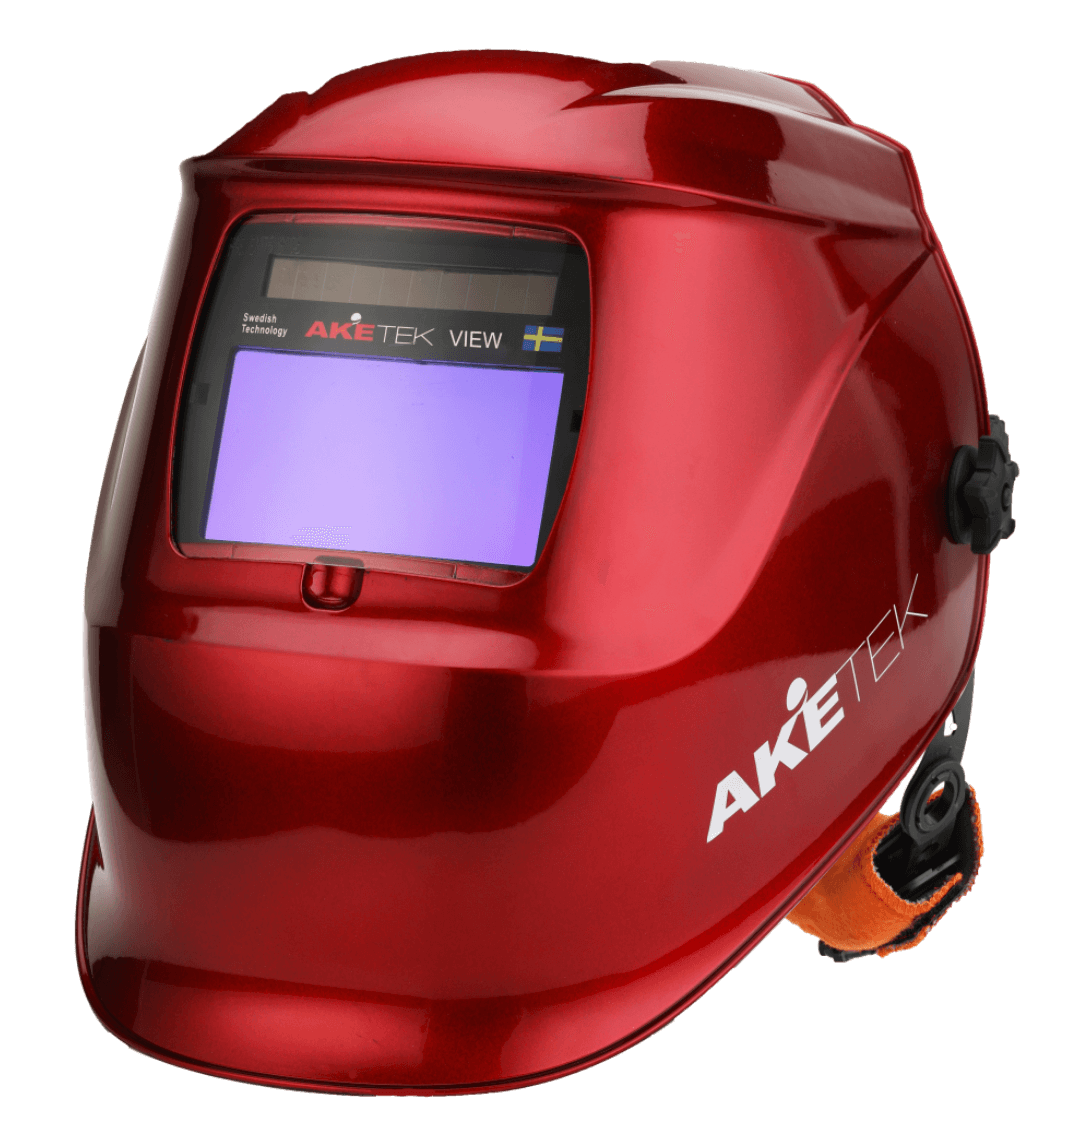 Aketek VIEW Welding Helmet Protection